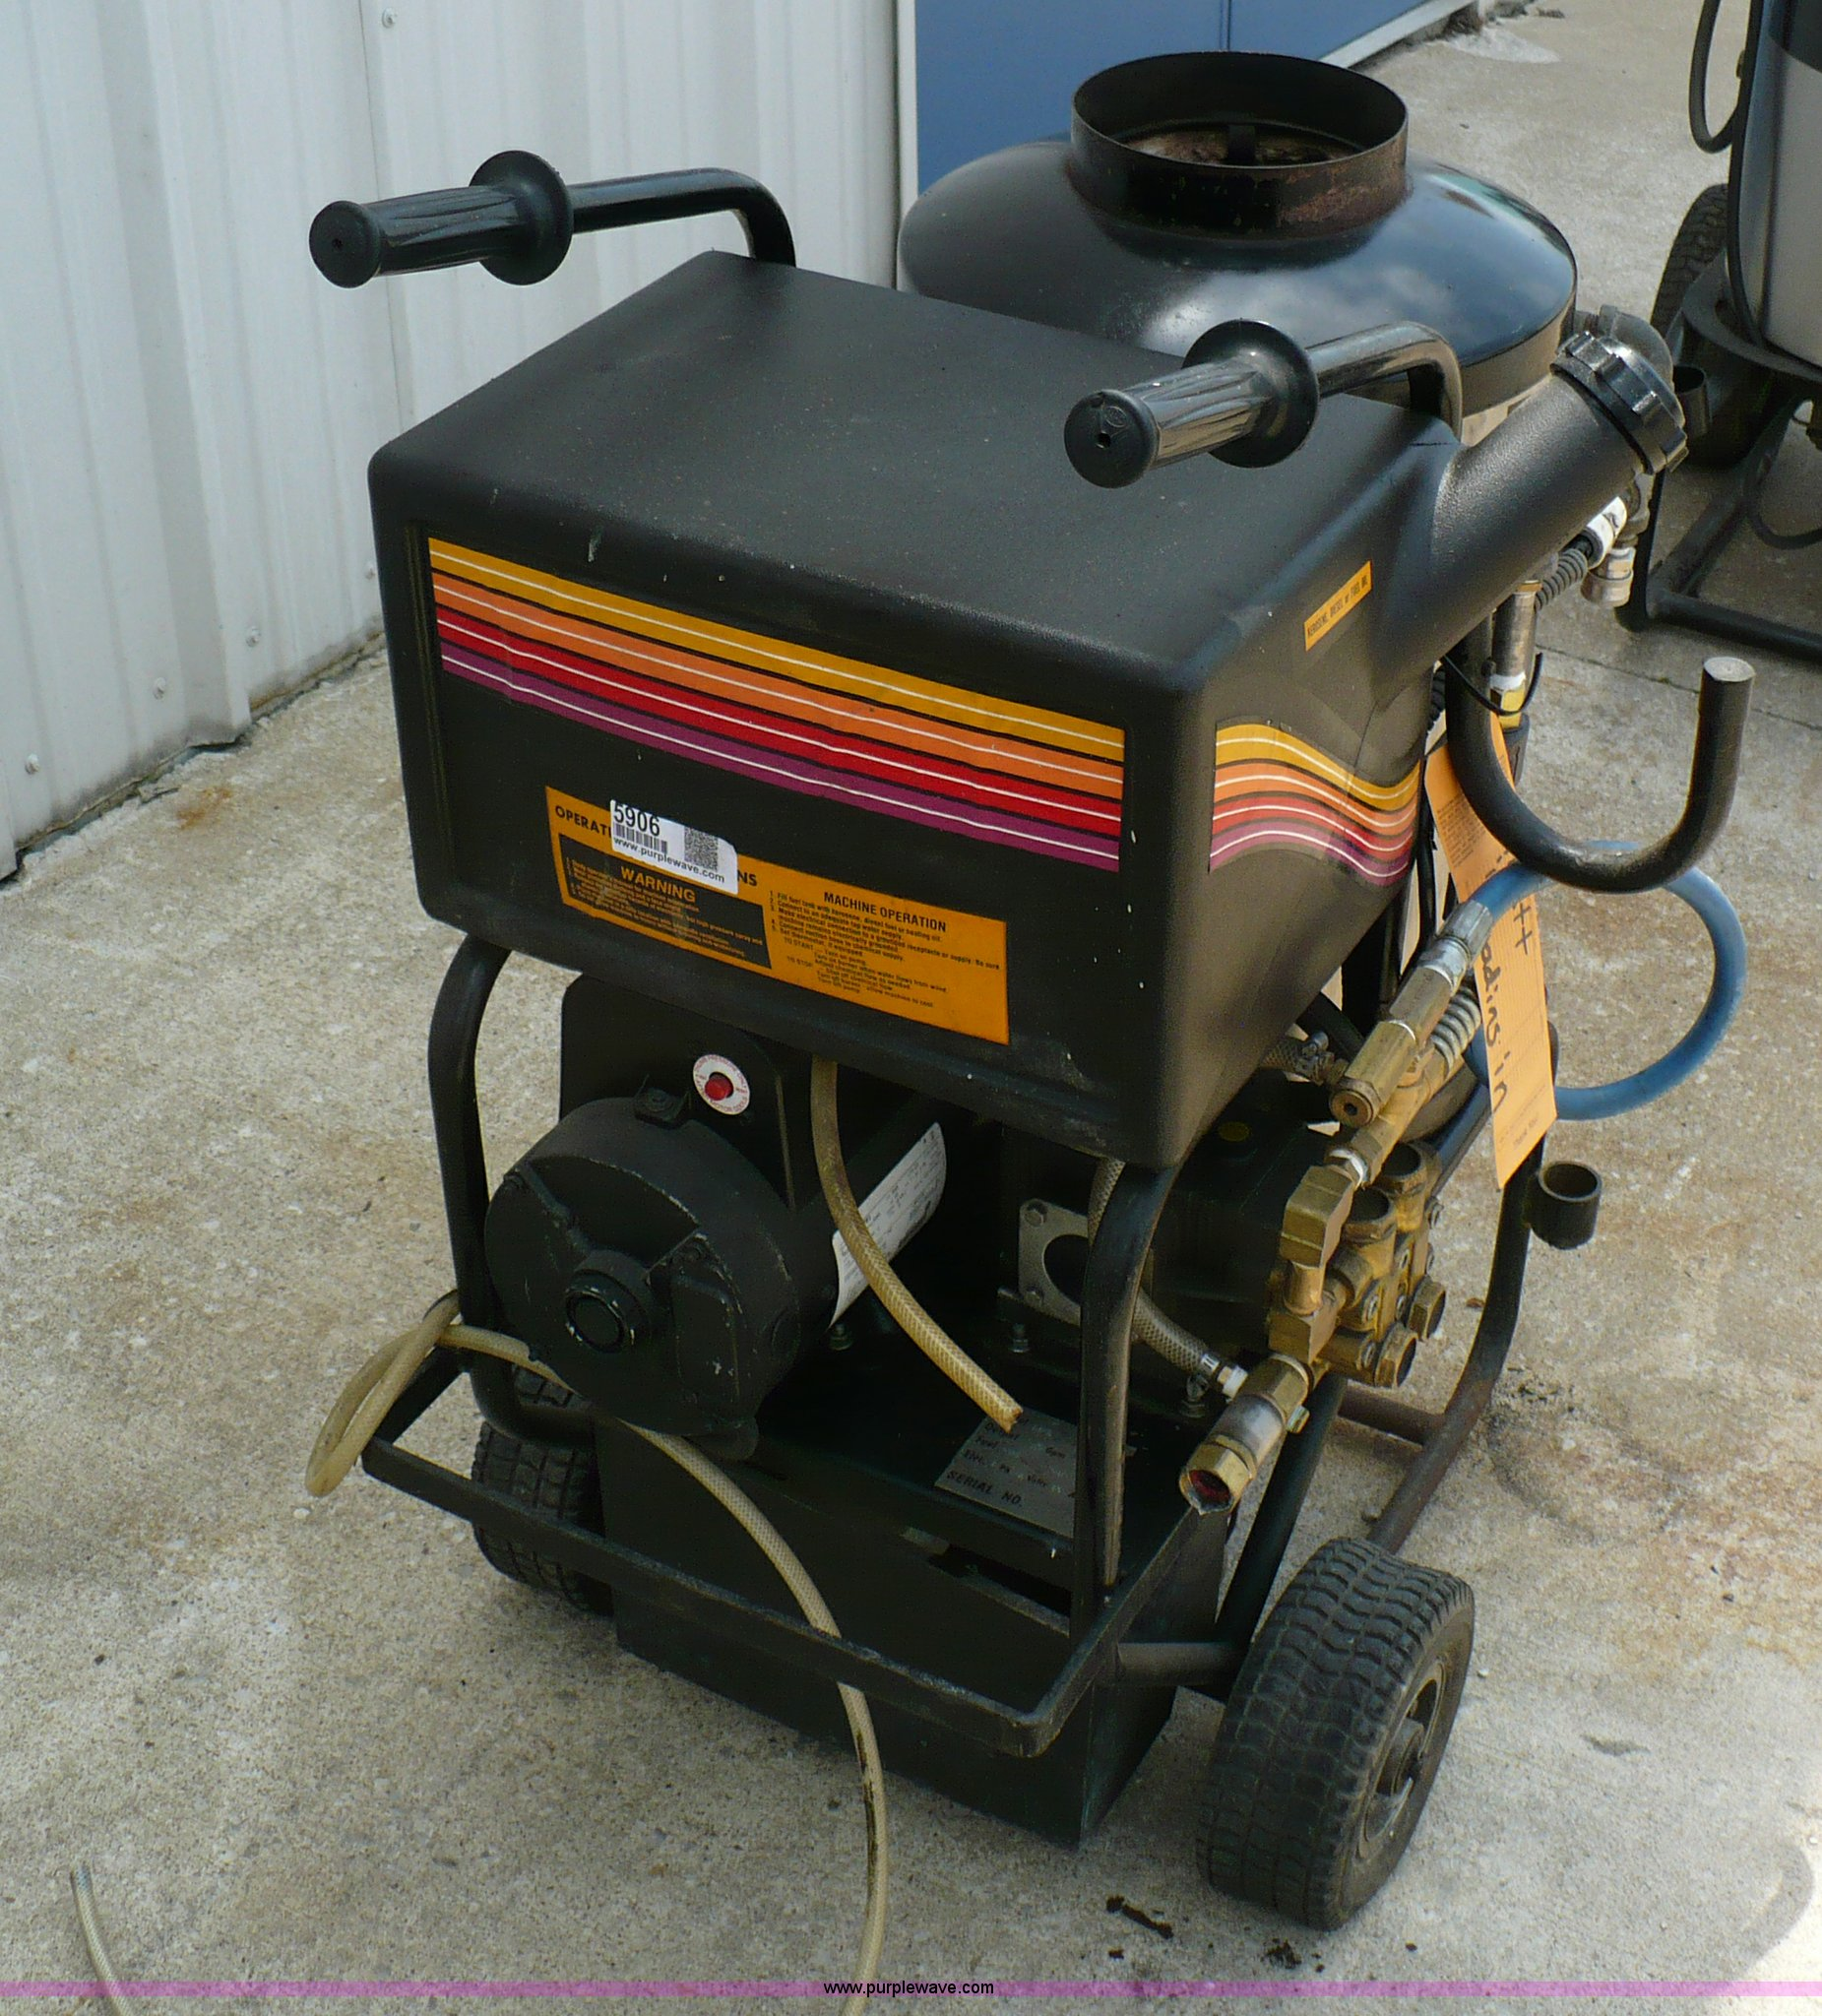 5906C aaladin 1321 cleaning systems pressure steam washer item 5 aaladin pressure washer wiring diagram at creativeand.co